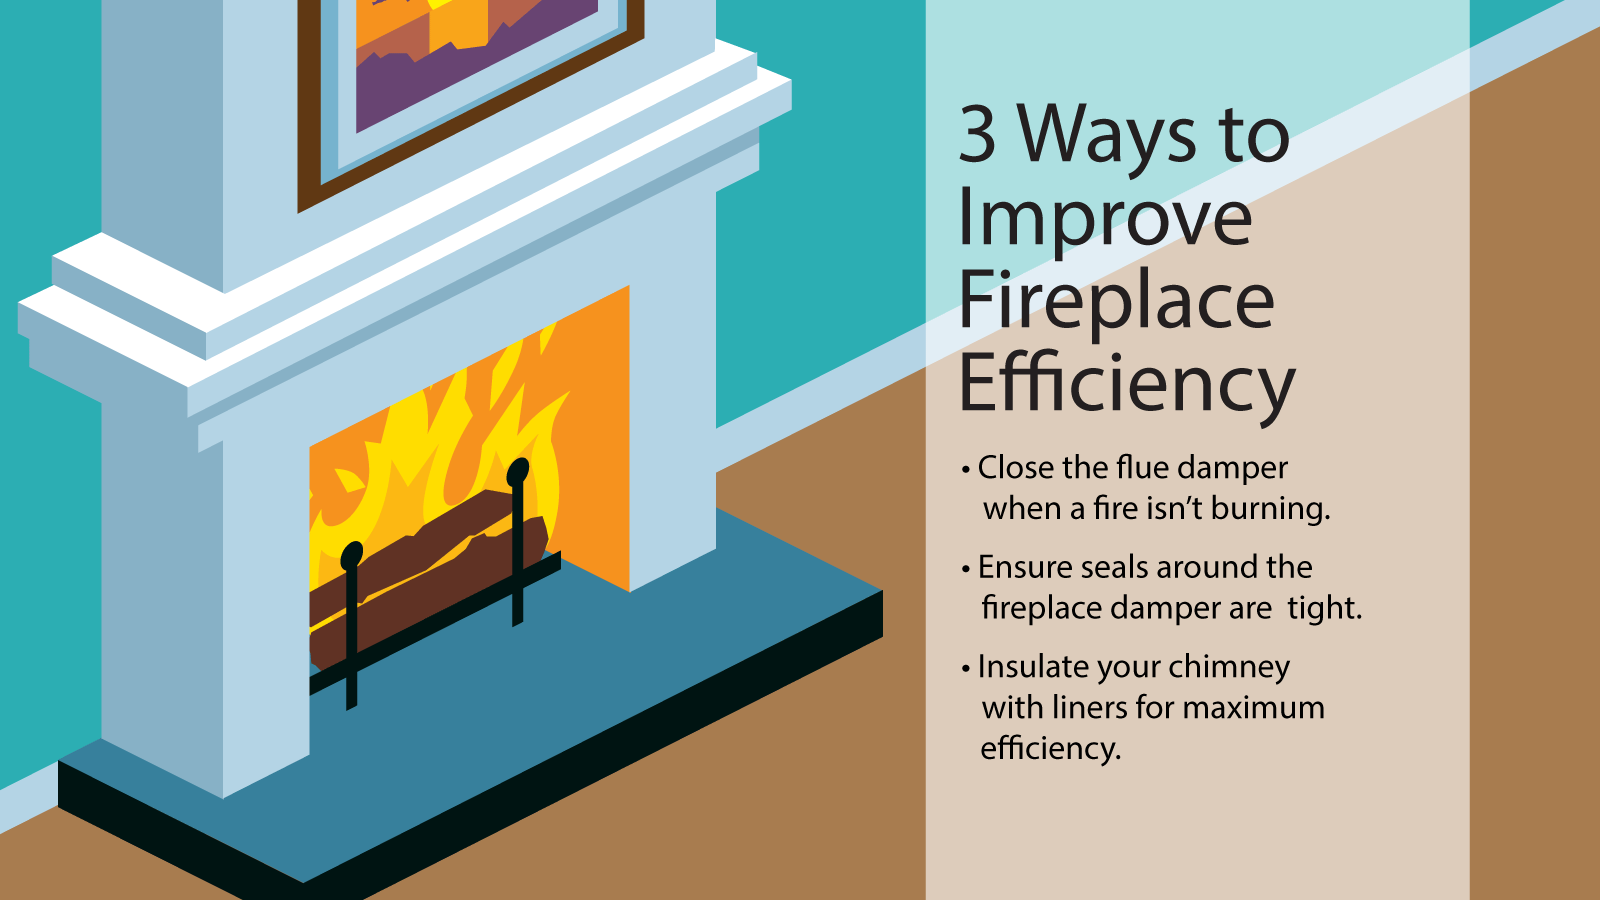 3 Ways to Improve Fireplace Efficiency. Close the flue damper when a fire isn't burning. Ensure seals around the fireplace damper are tight. Insulate your chimney with liners for maximum efficiency.